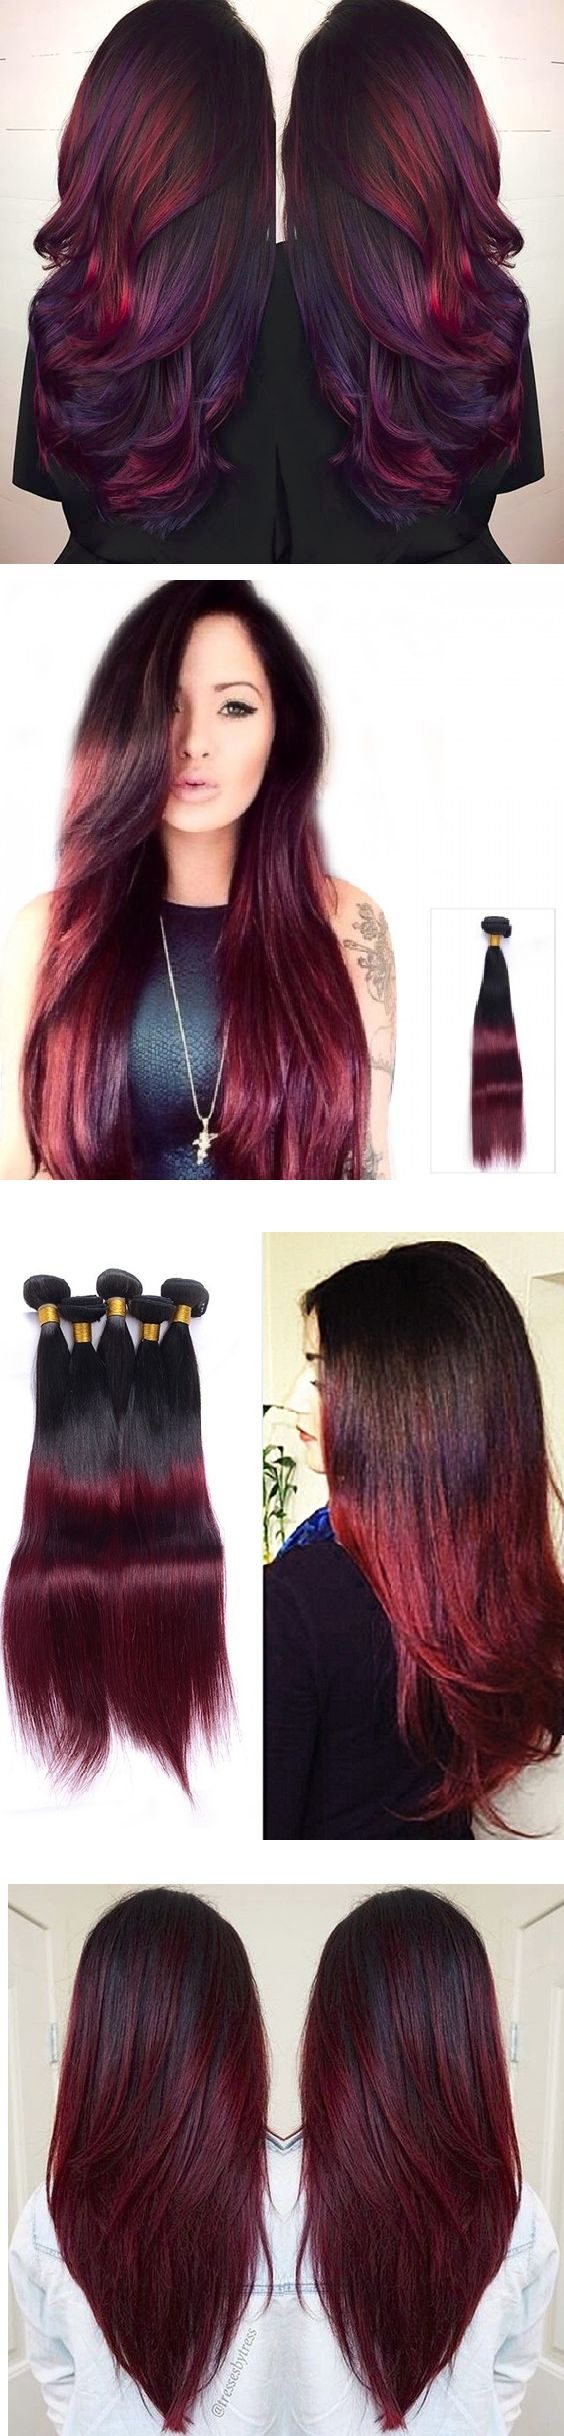 "Only $39.99. Luscious Red 16""-26"" Ombre Two-Tone Straight Indian Remy Human Hair 100g. Buy yours Today at Sale Price."